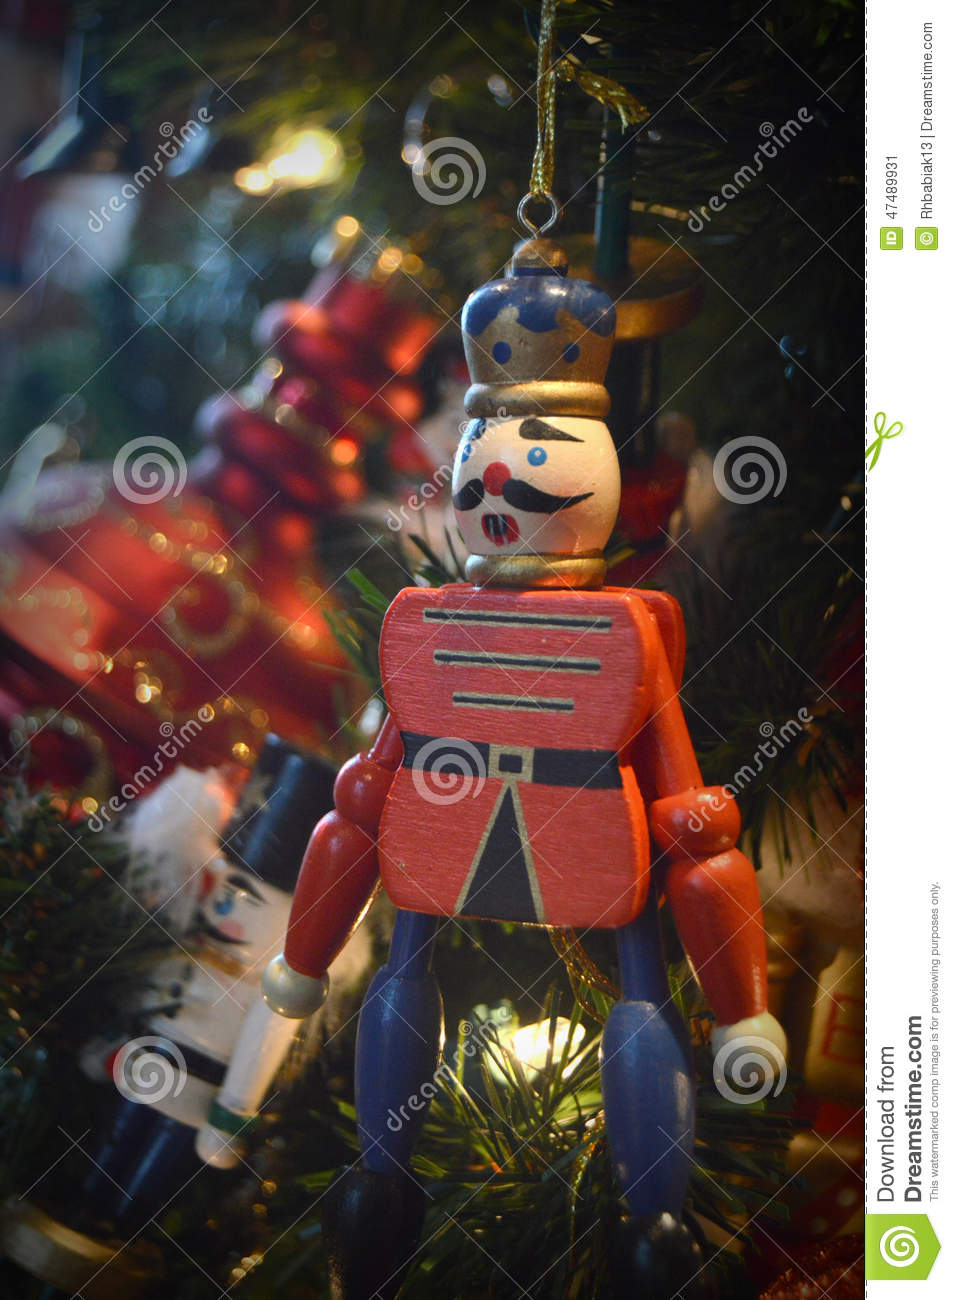 download toy soldier christmas ornament stock image image of soldiers holiday 47489931 - Toy Soldier Christmas Decoration